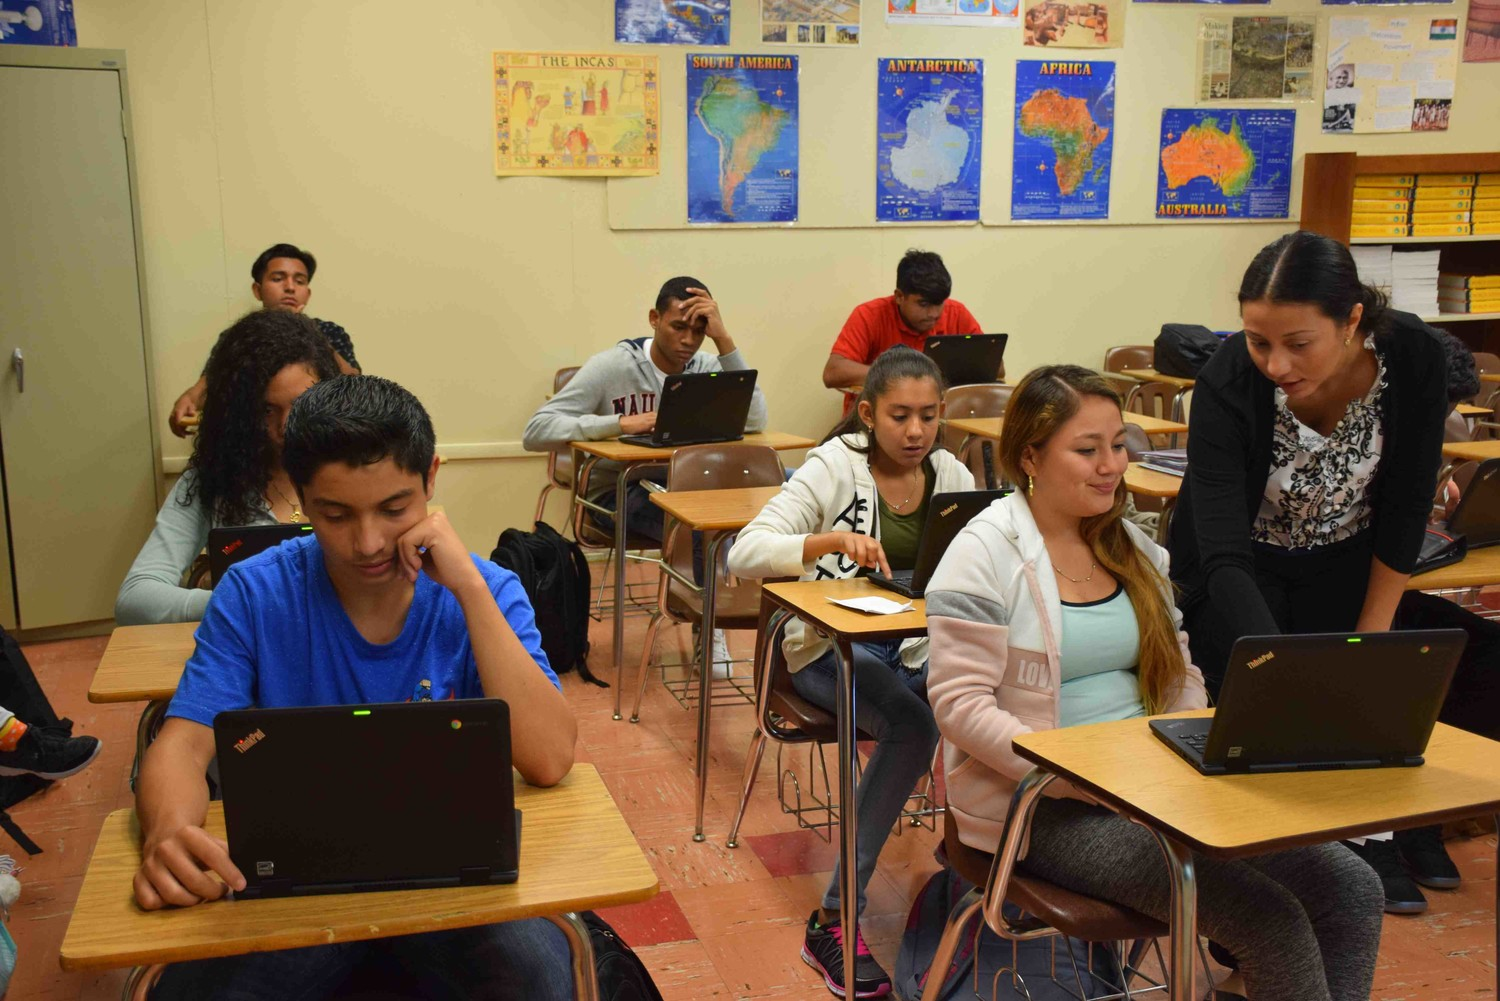 Freeport High School teachers are infusing traditional classroom teaching methods with new technologies now that all students have laptops.